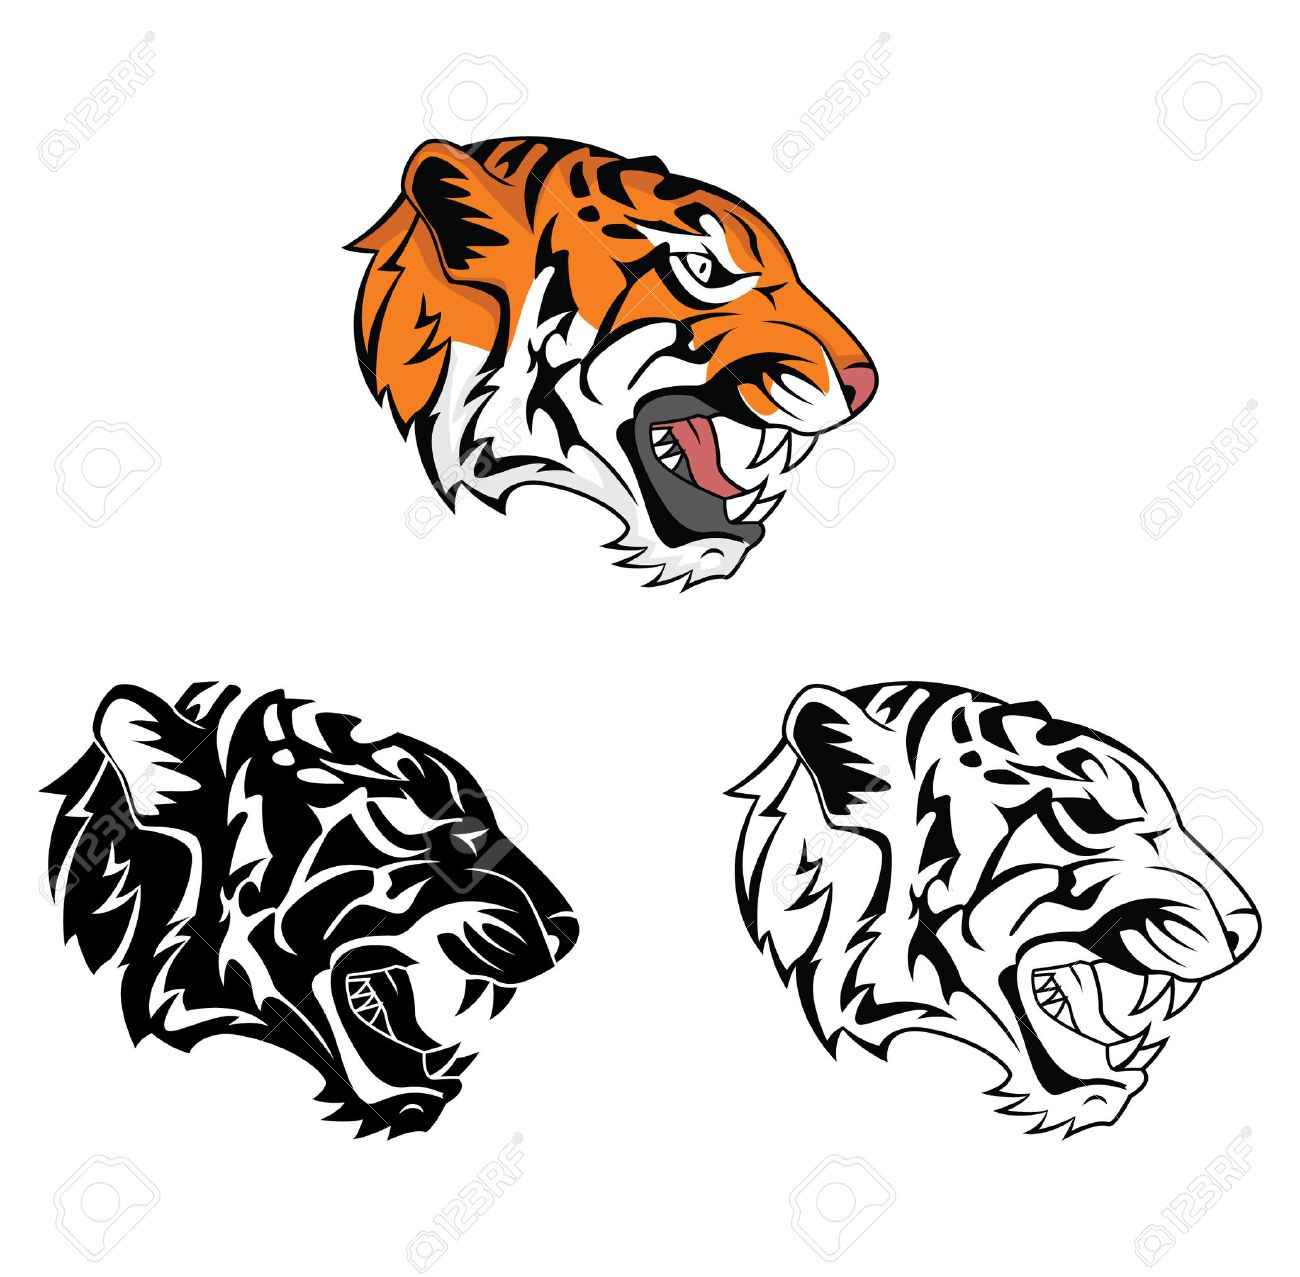 tiger roar stock photos royalty free tiger roar images and pictures